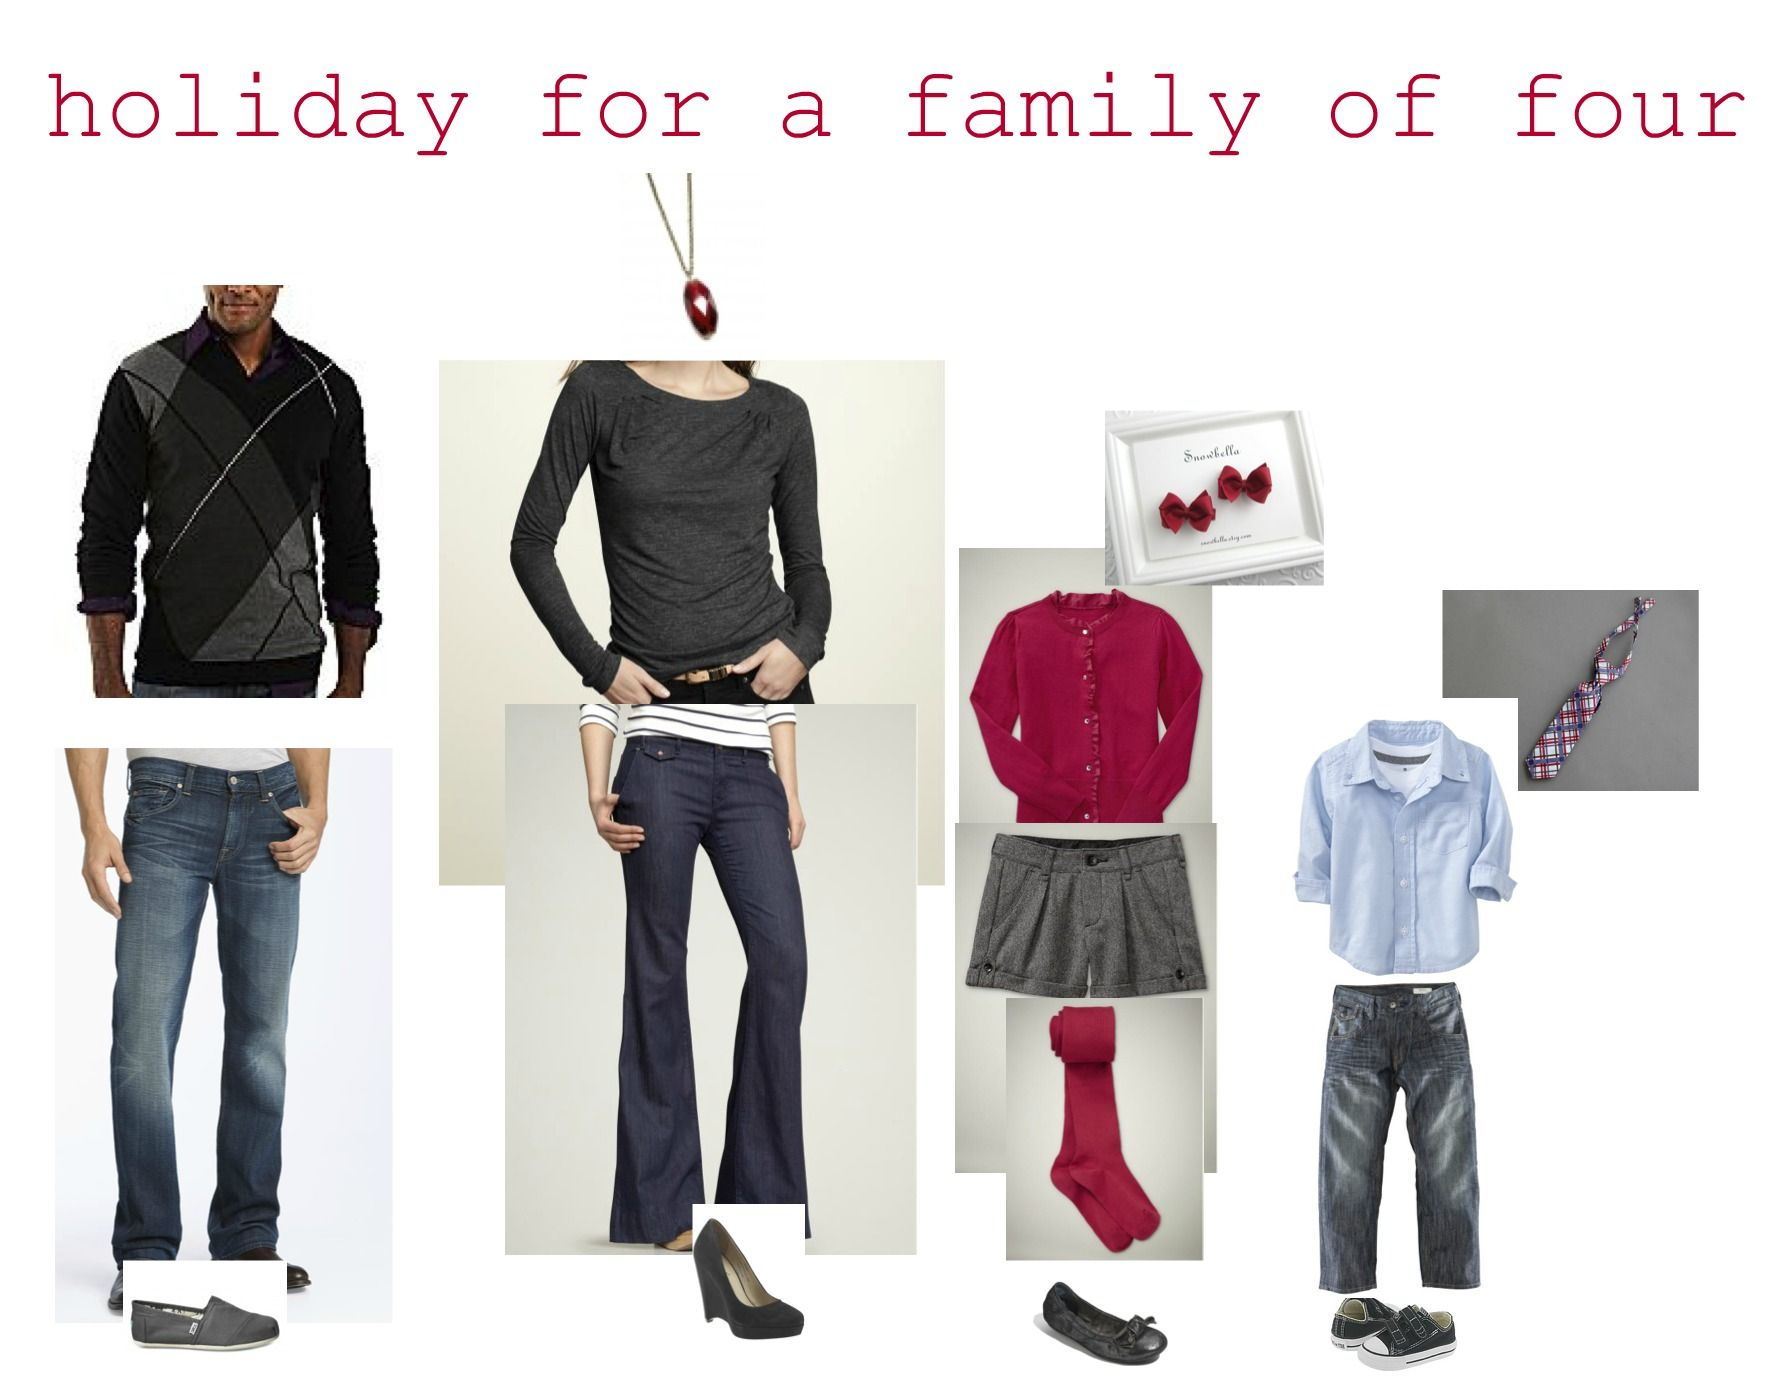 Family Of Four Holiday Outfits